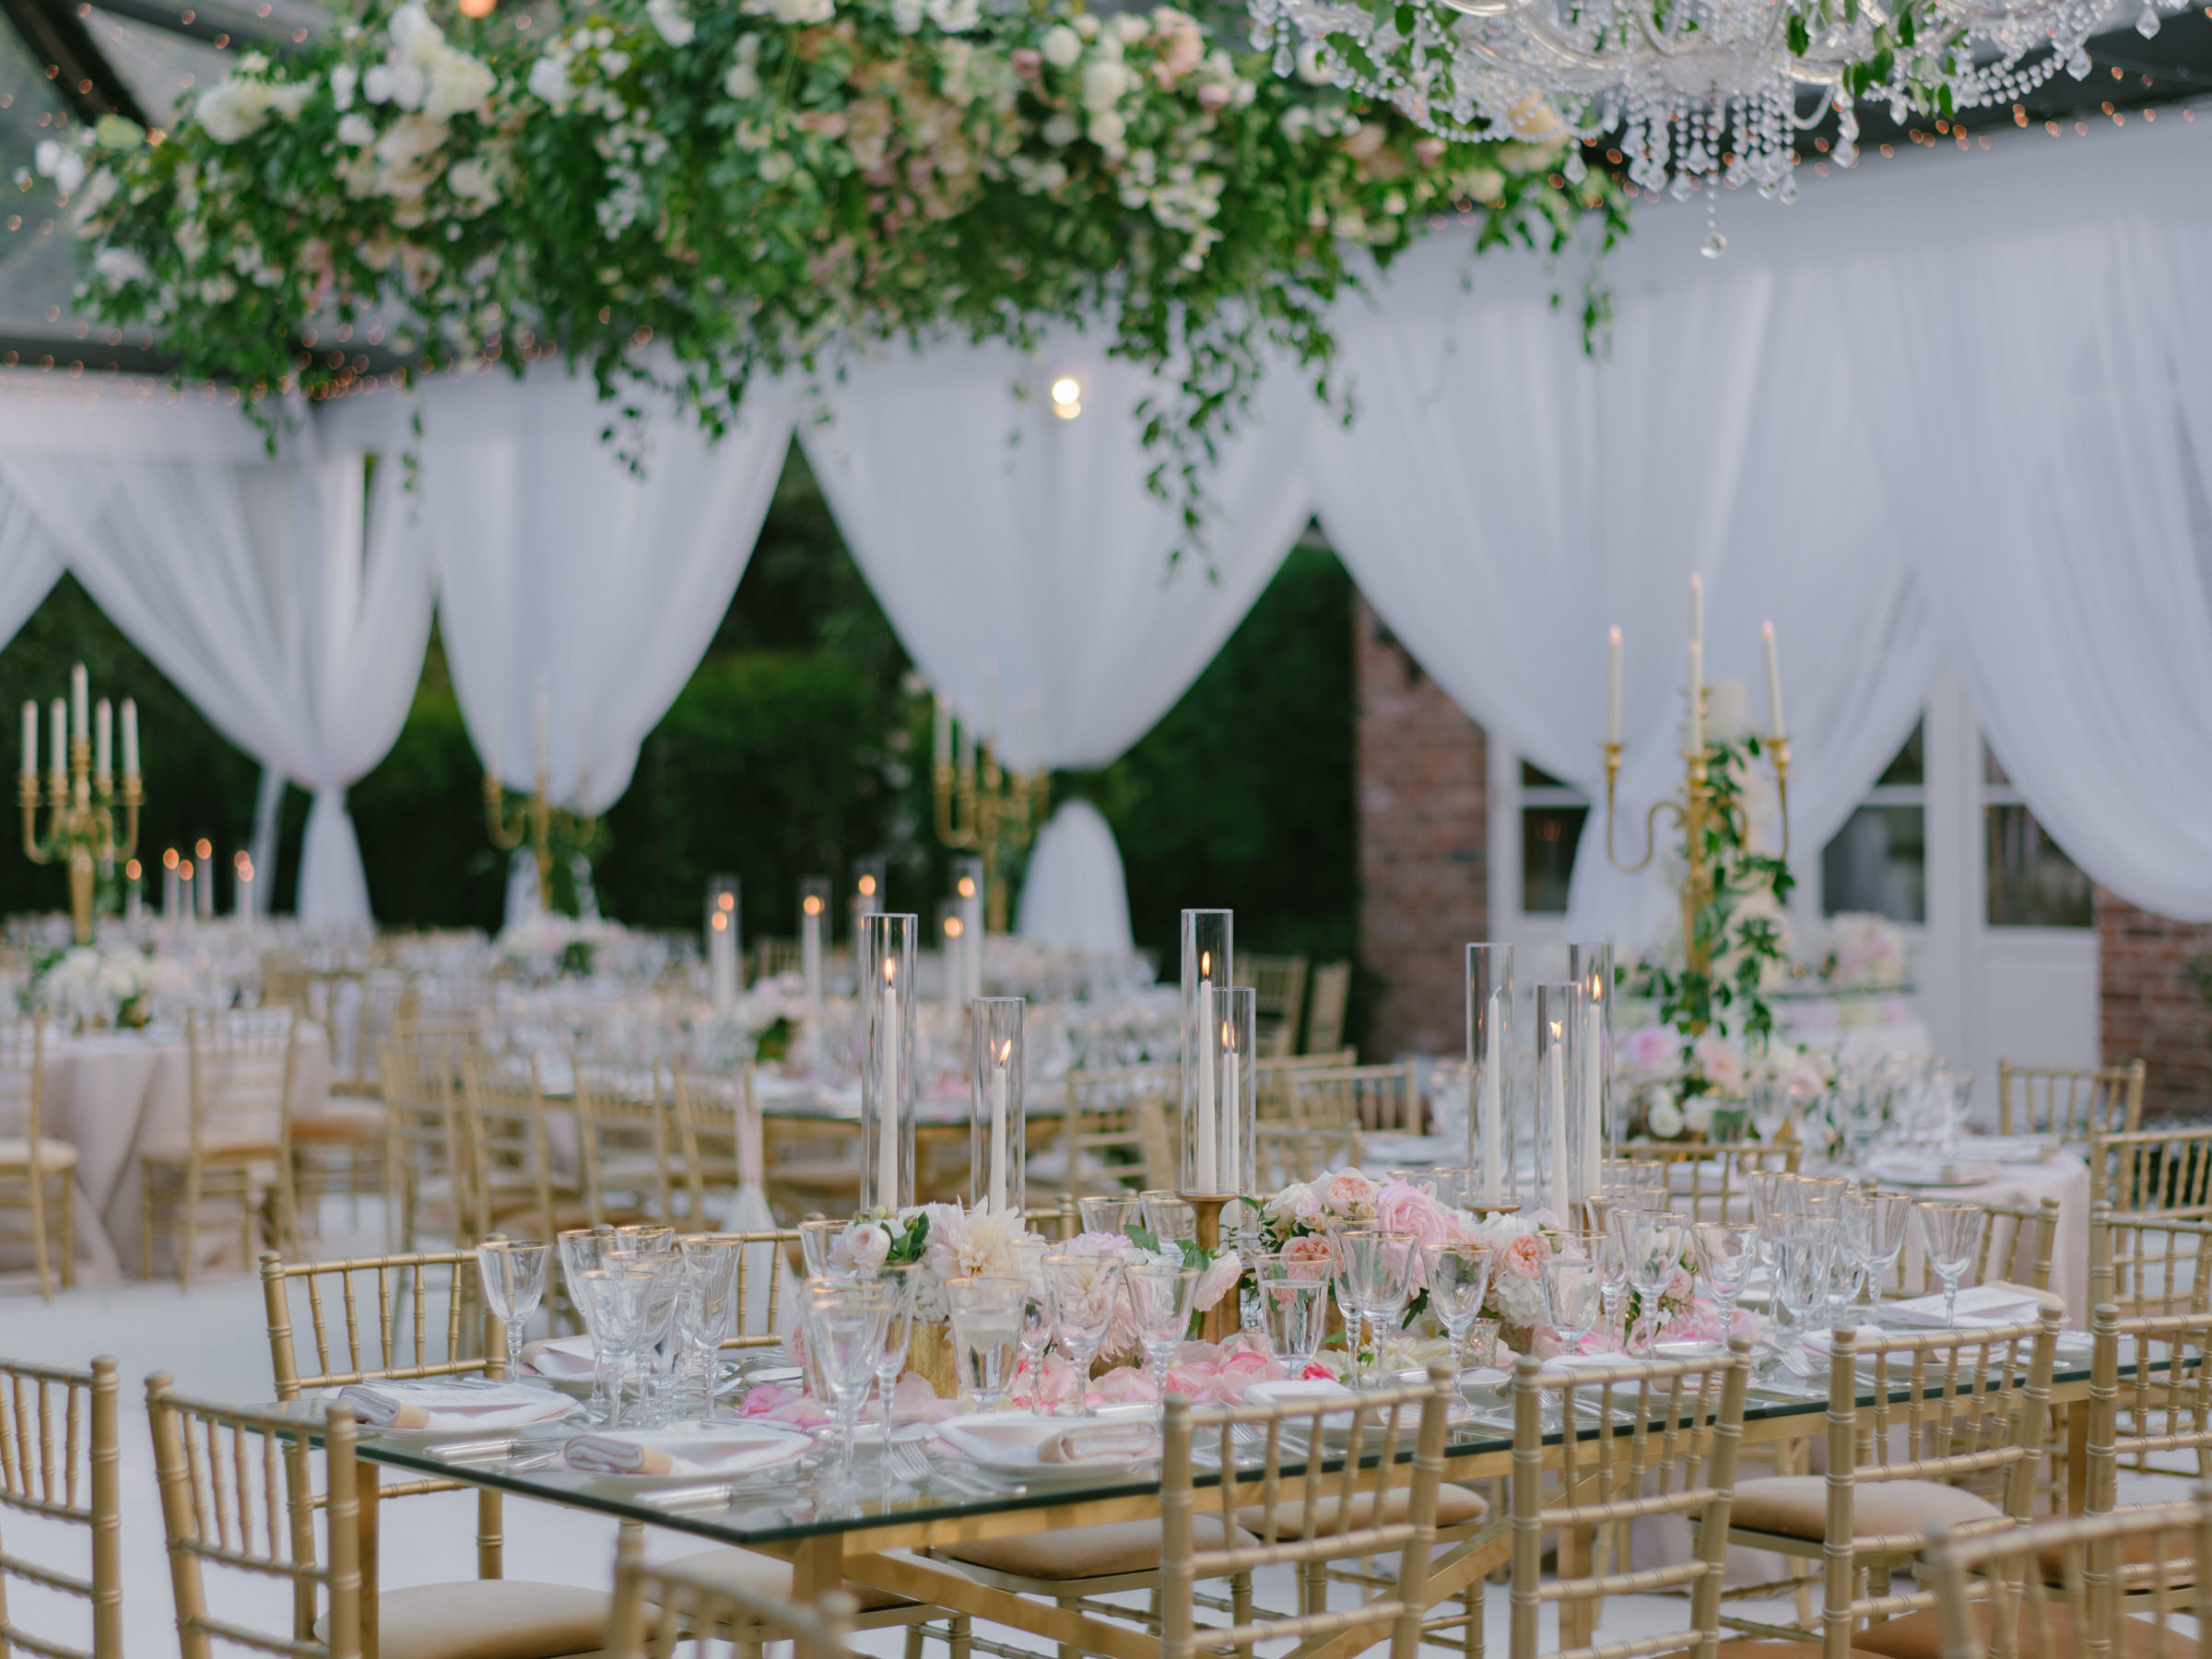 outdoor reception tables against white drapes and floral decor - photo by Amy and Stuart Photography